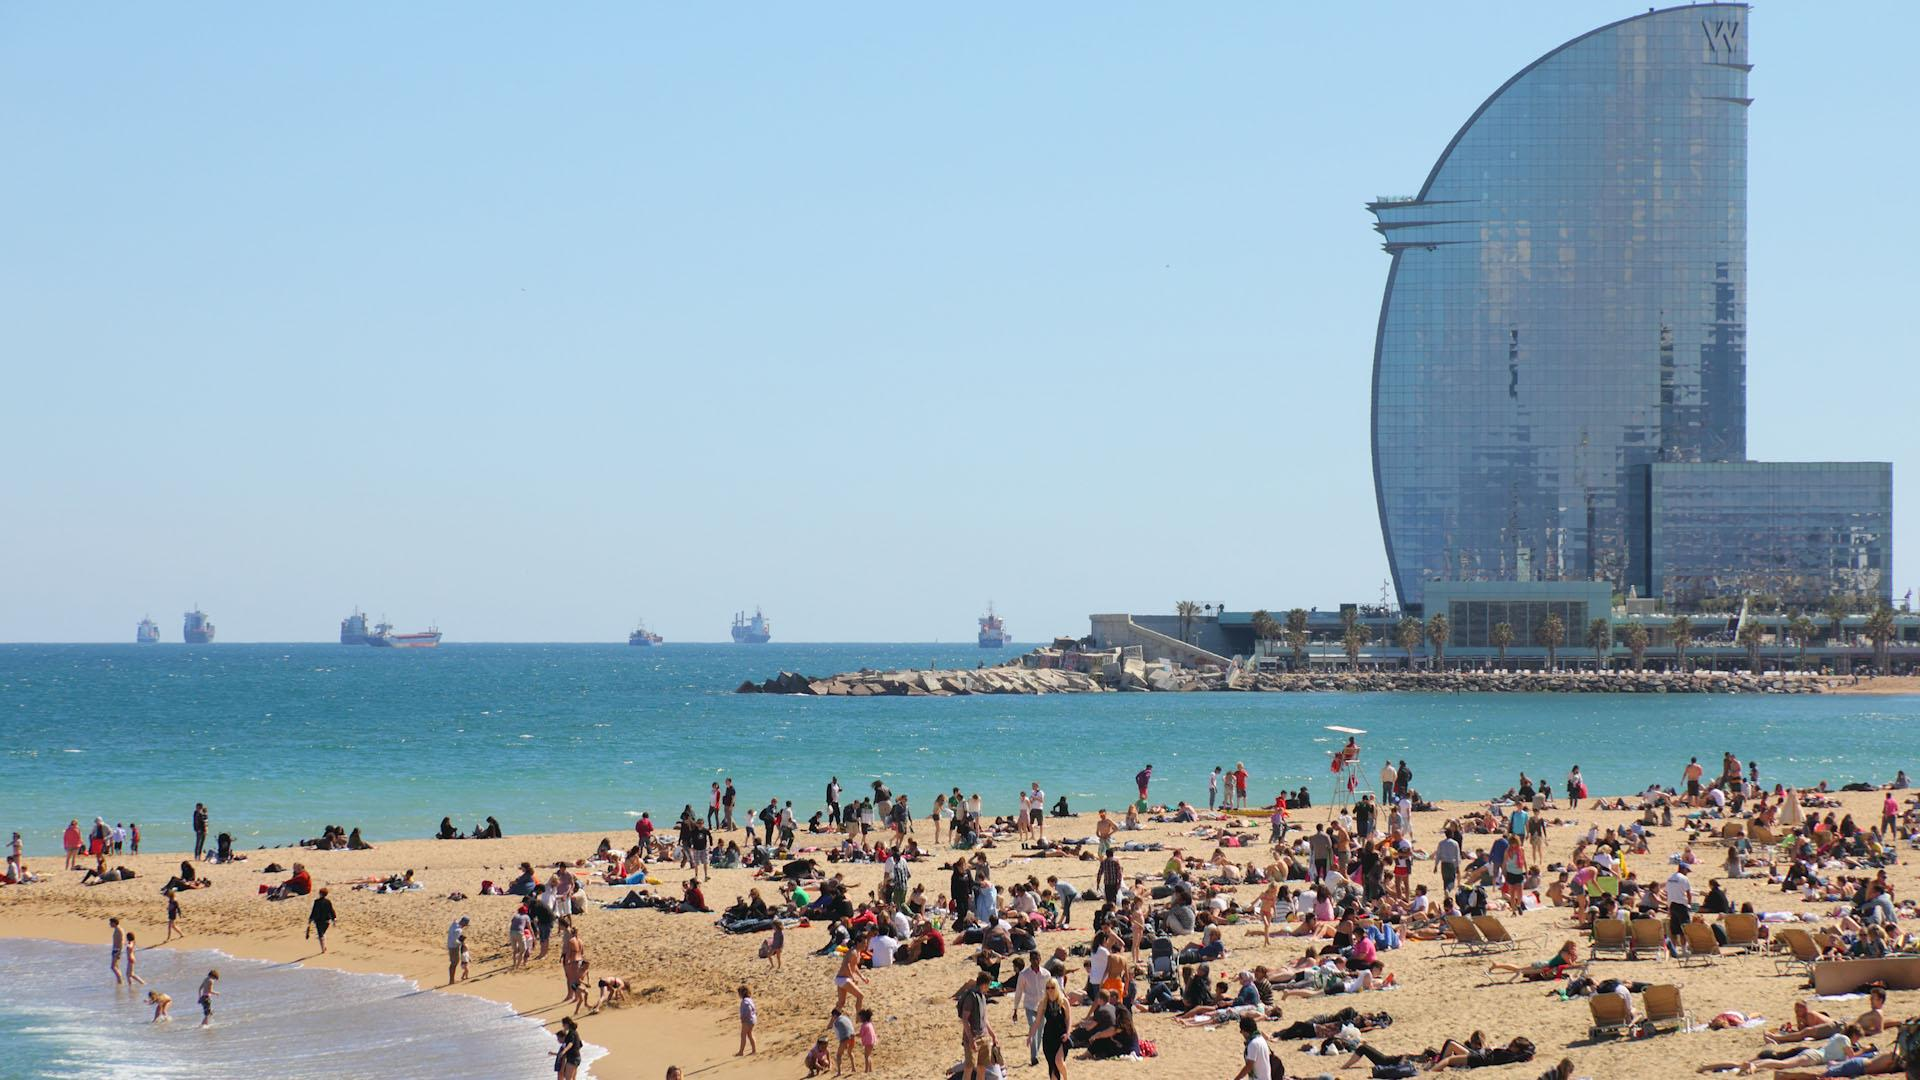 Beaches Coasts And Islands Lonely Planet - The 11 best urban beaches in europe